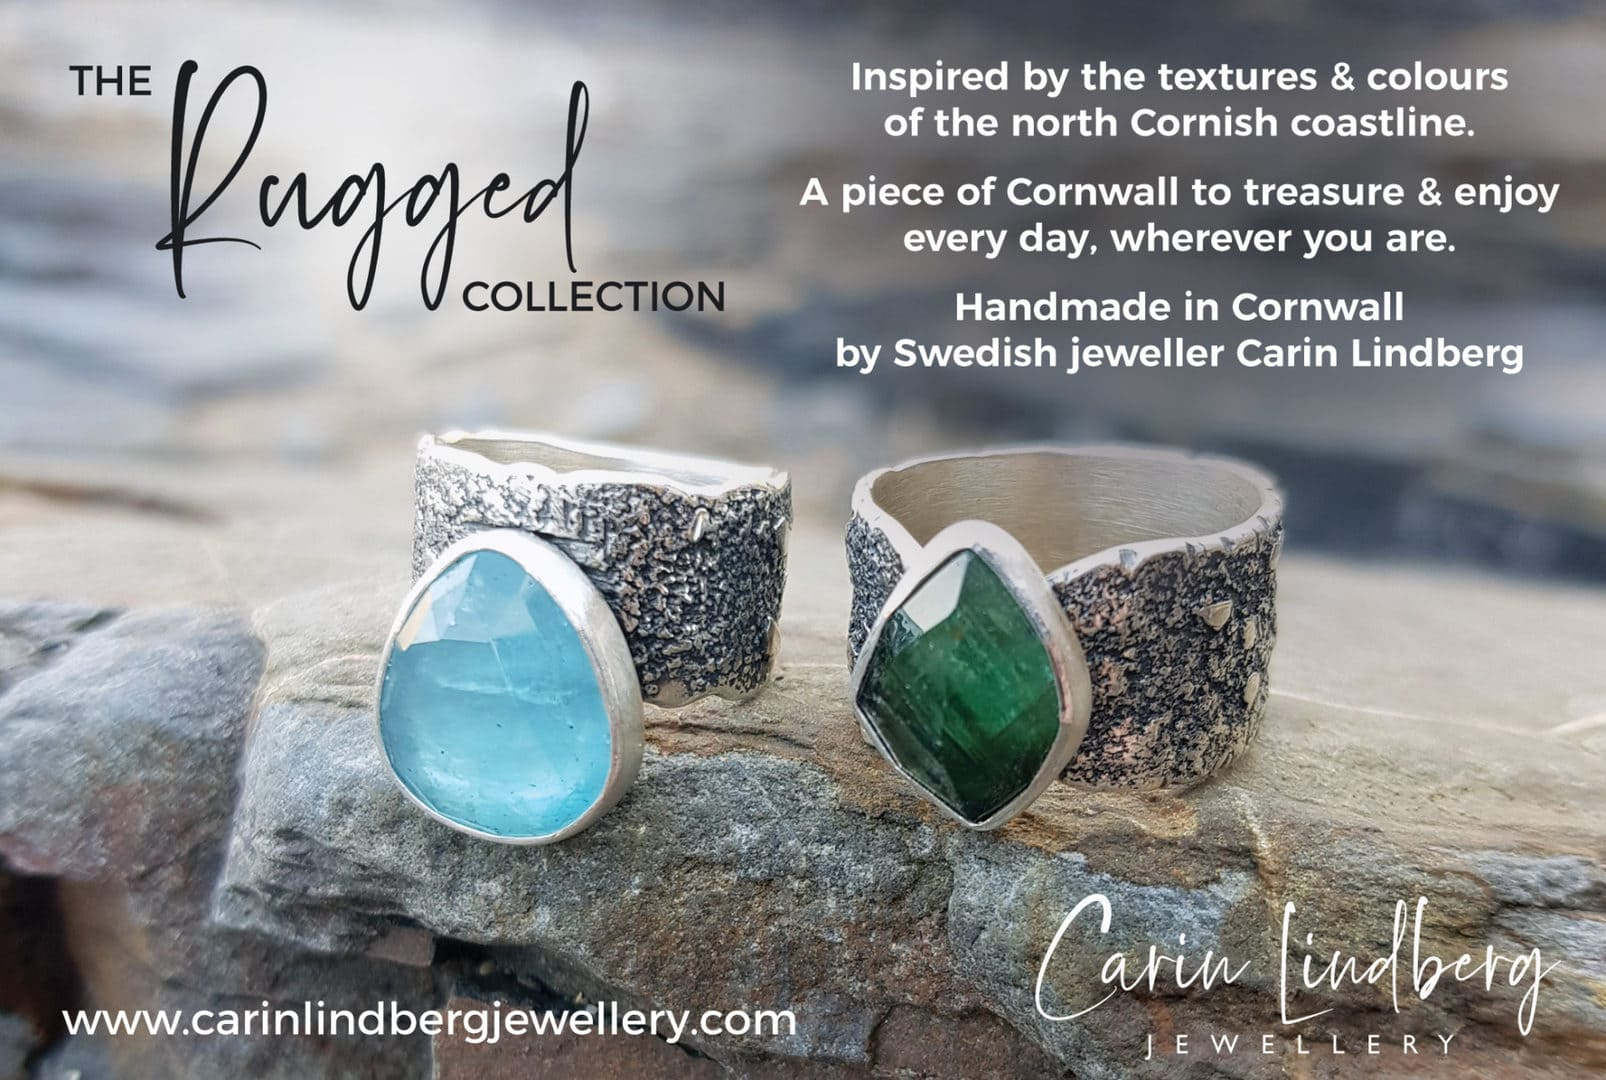 Two one of a kind Rugged collection rings photographed at the beach